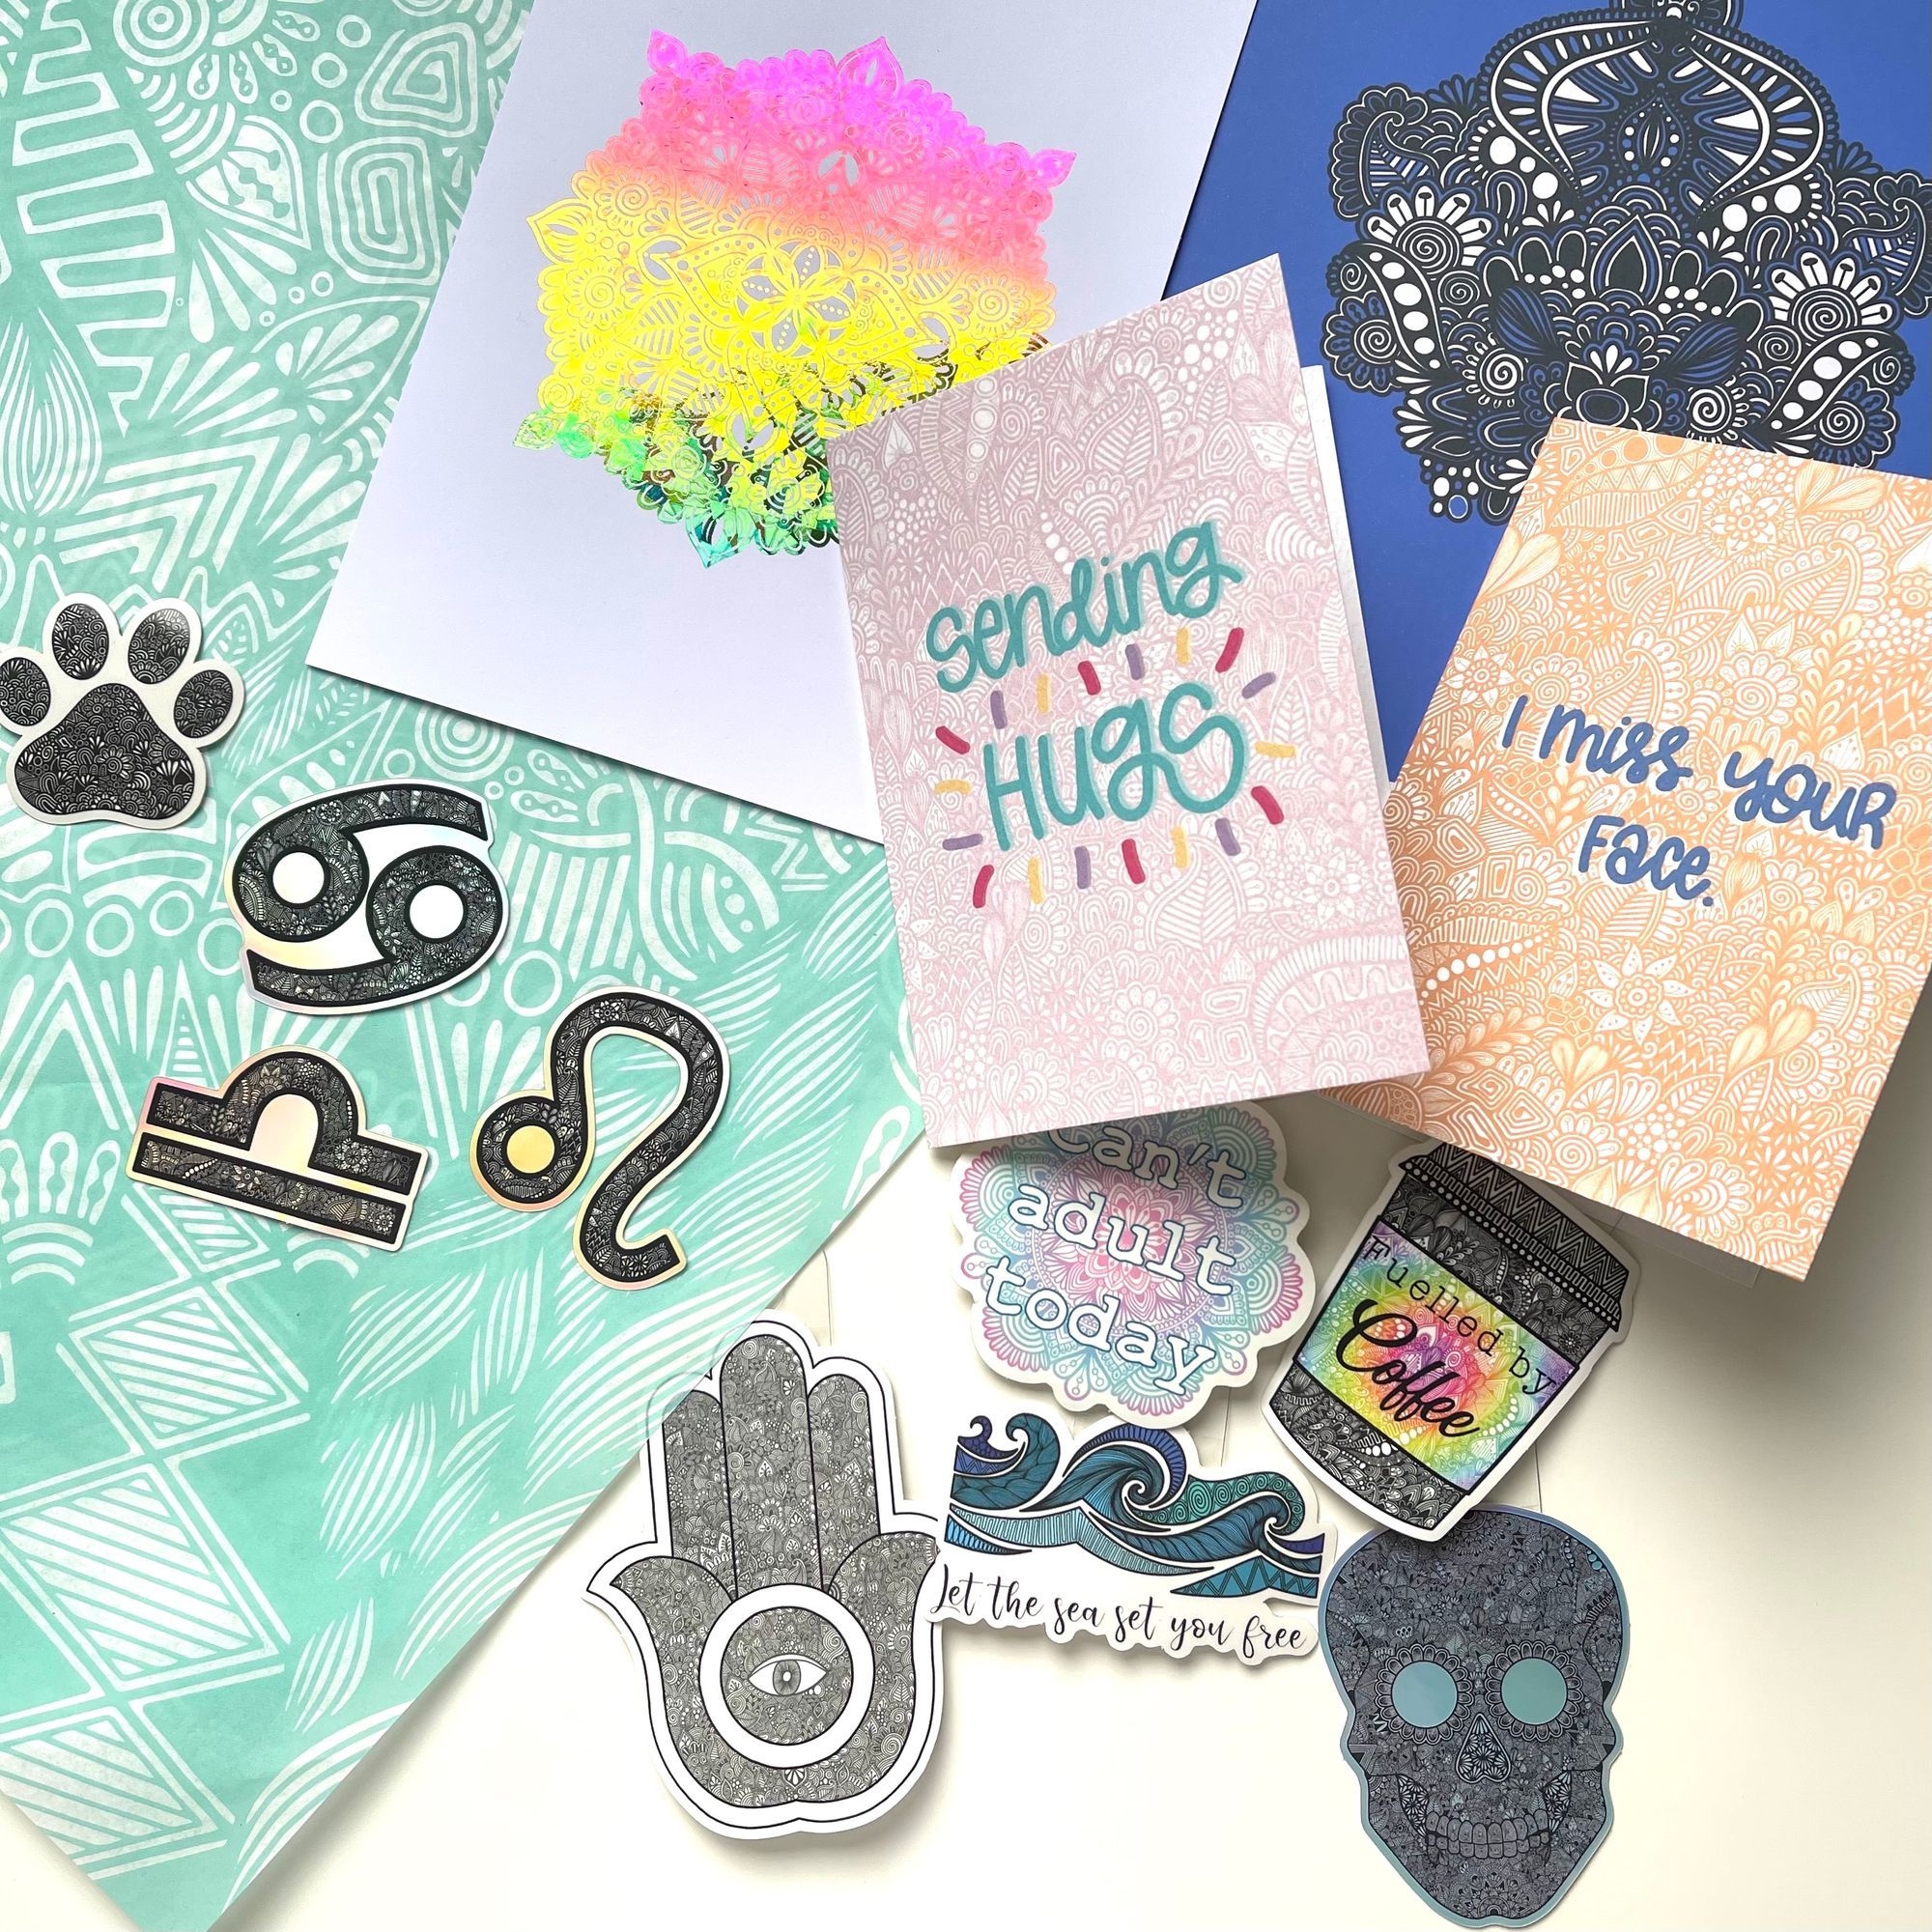 DrawInk Designs: Magnifying Joy with Patterns and Doodles